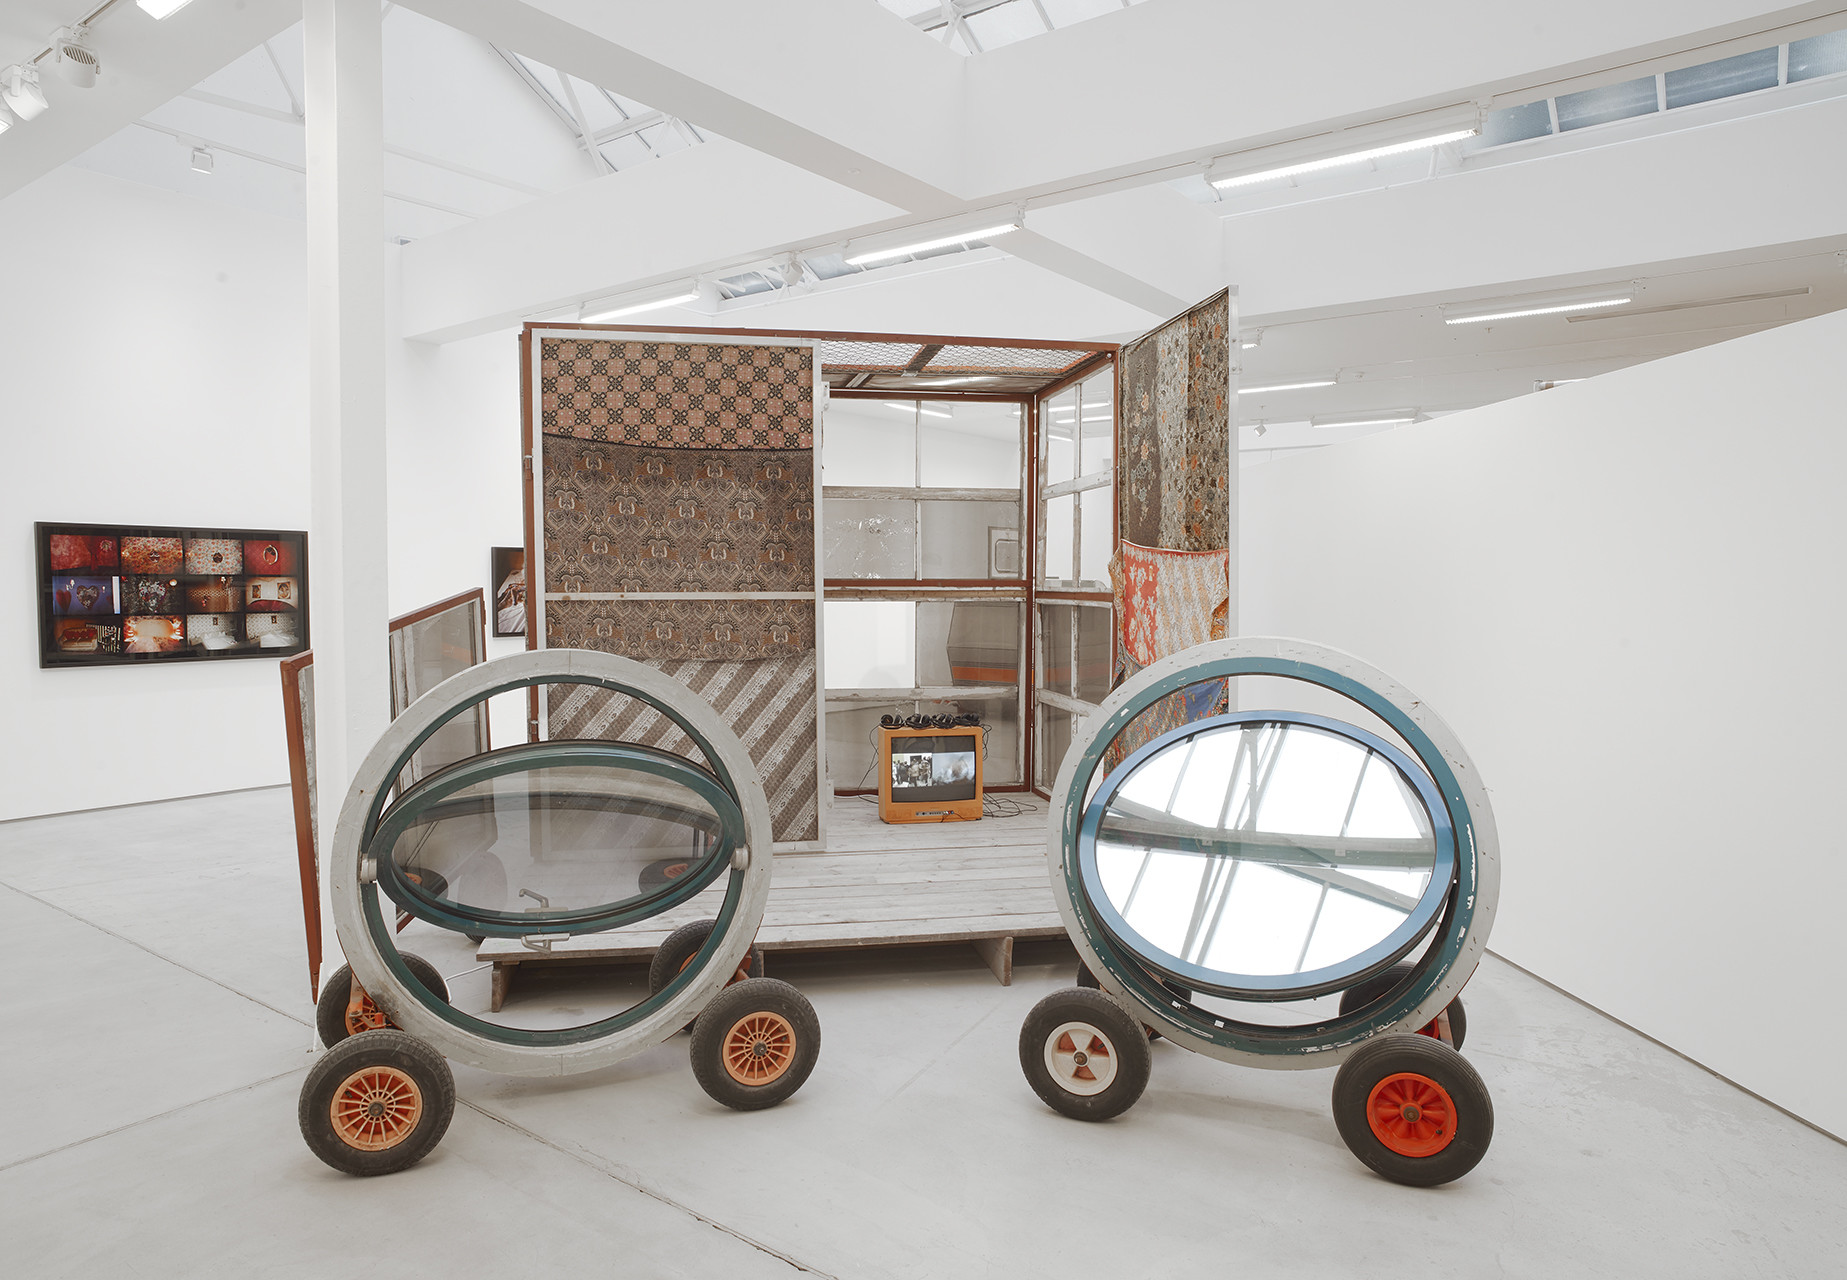 <p>Marvin Gaye Chetwynd, installation view, 2017</p>